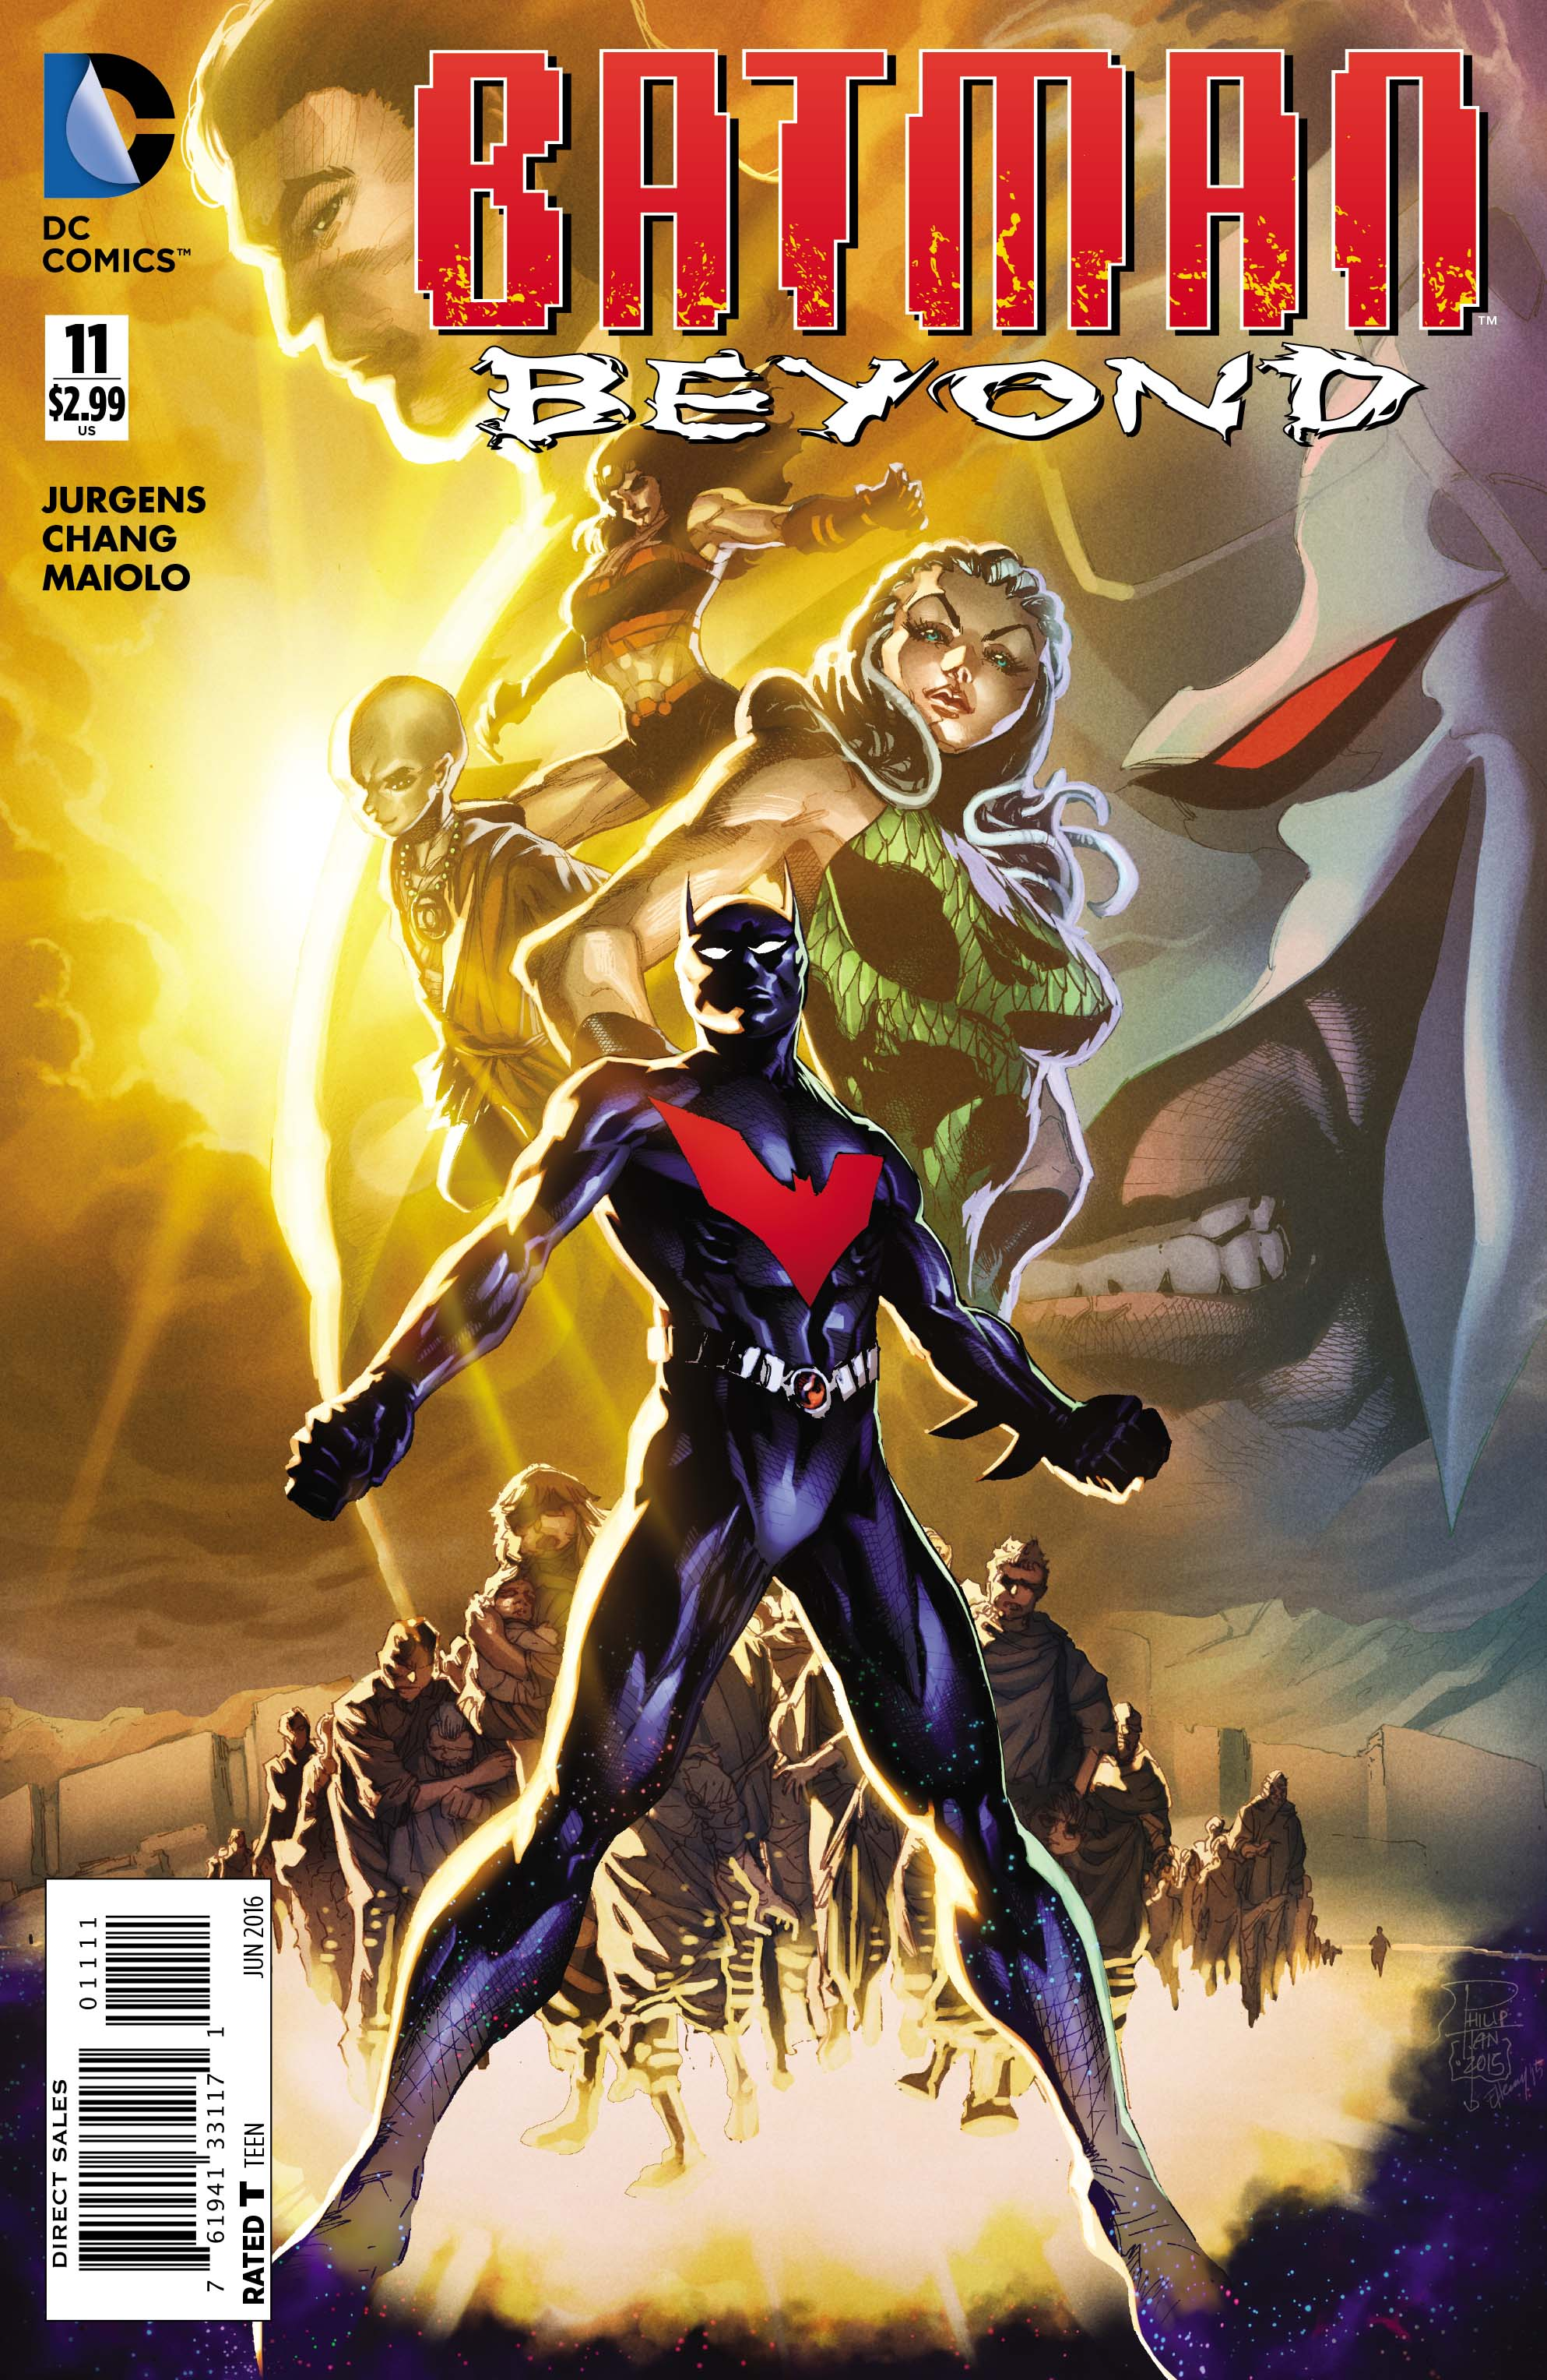 BATMAN BEYOND #11 cover